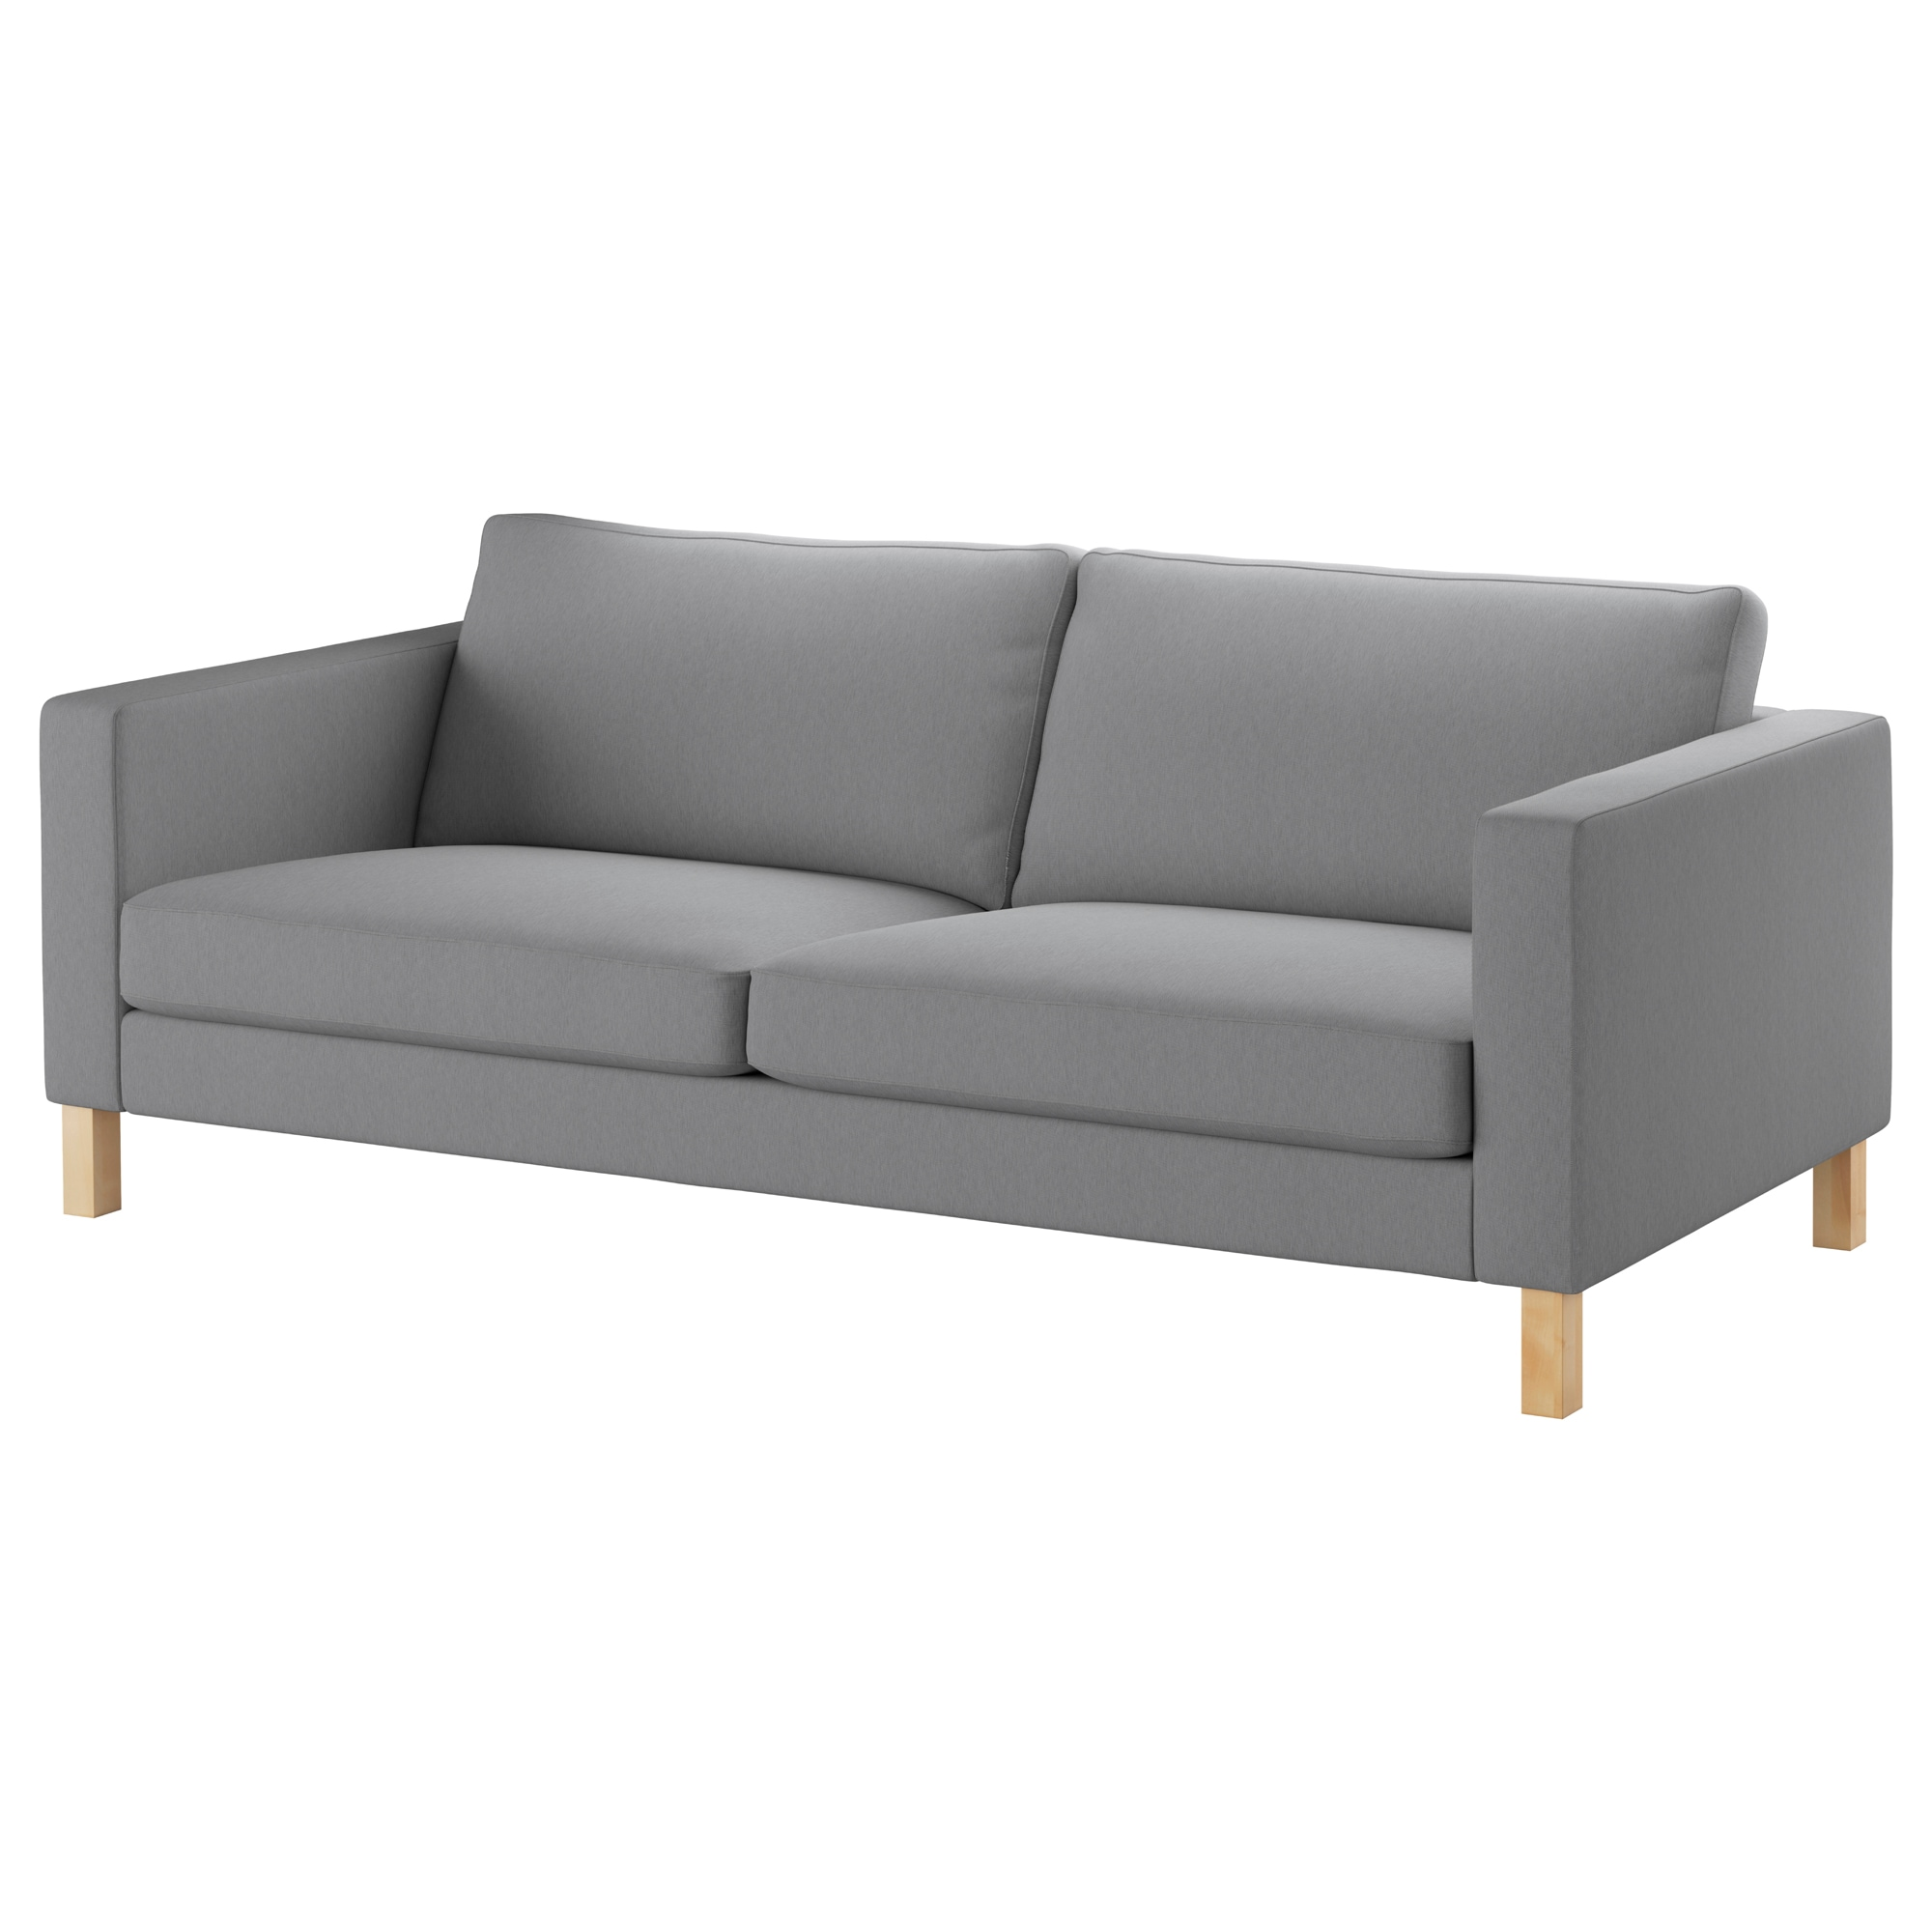 Sofa KARLSTAD Knisa light gray